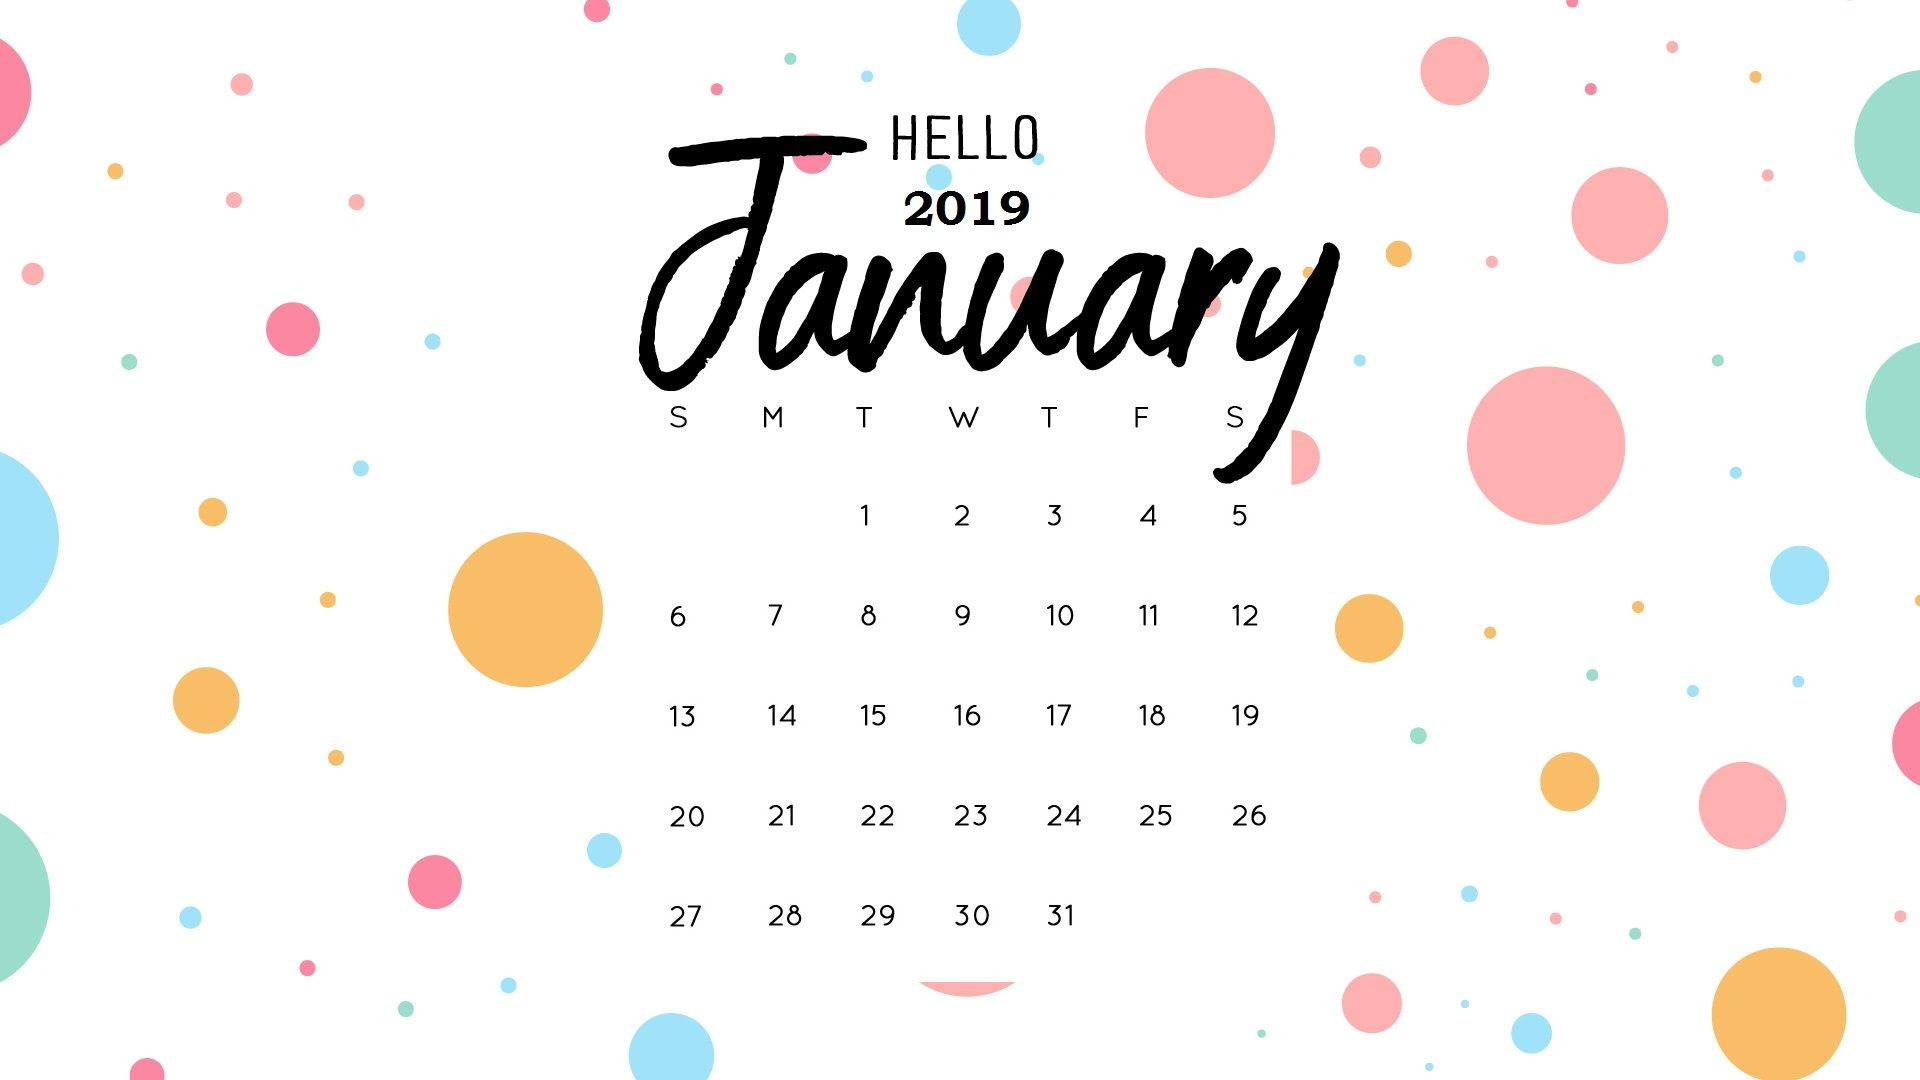 January 2019 Calendar Wallpaper HD